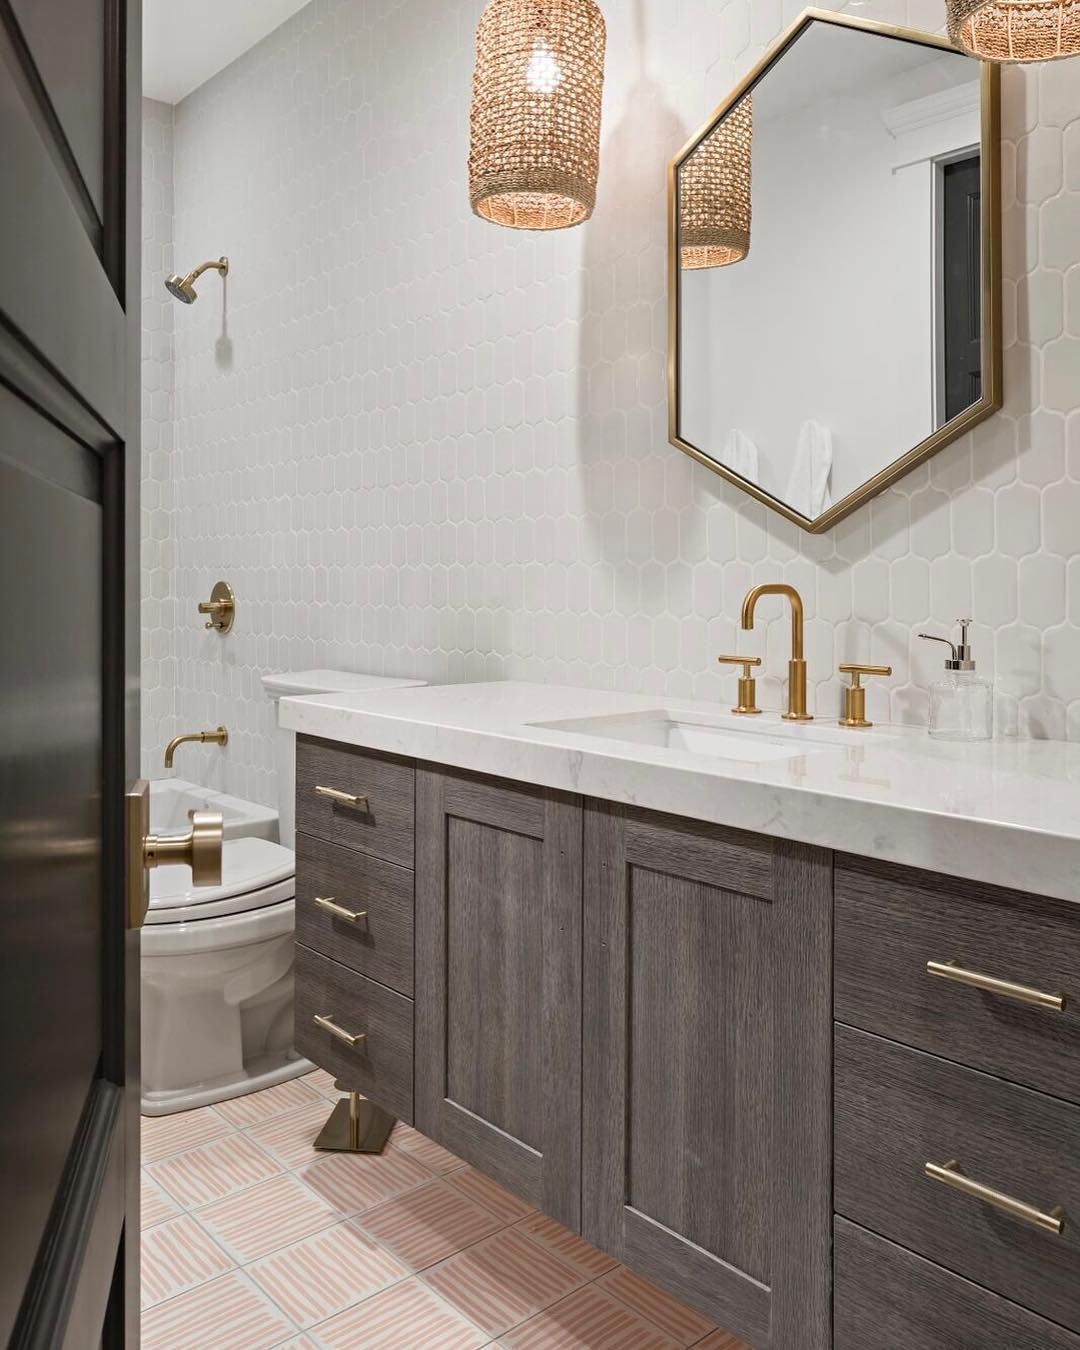 This Bathroom Is One Of Our Favorite Designs Our Grey Frameless Floating Vanity Adds To The Mode Beautiful Bathroom Vanity Floating Vanity Beautiful Bathrooms [ 1350 x 1080 Pixel ]